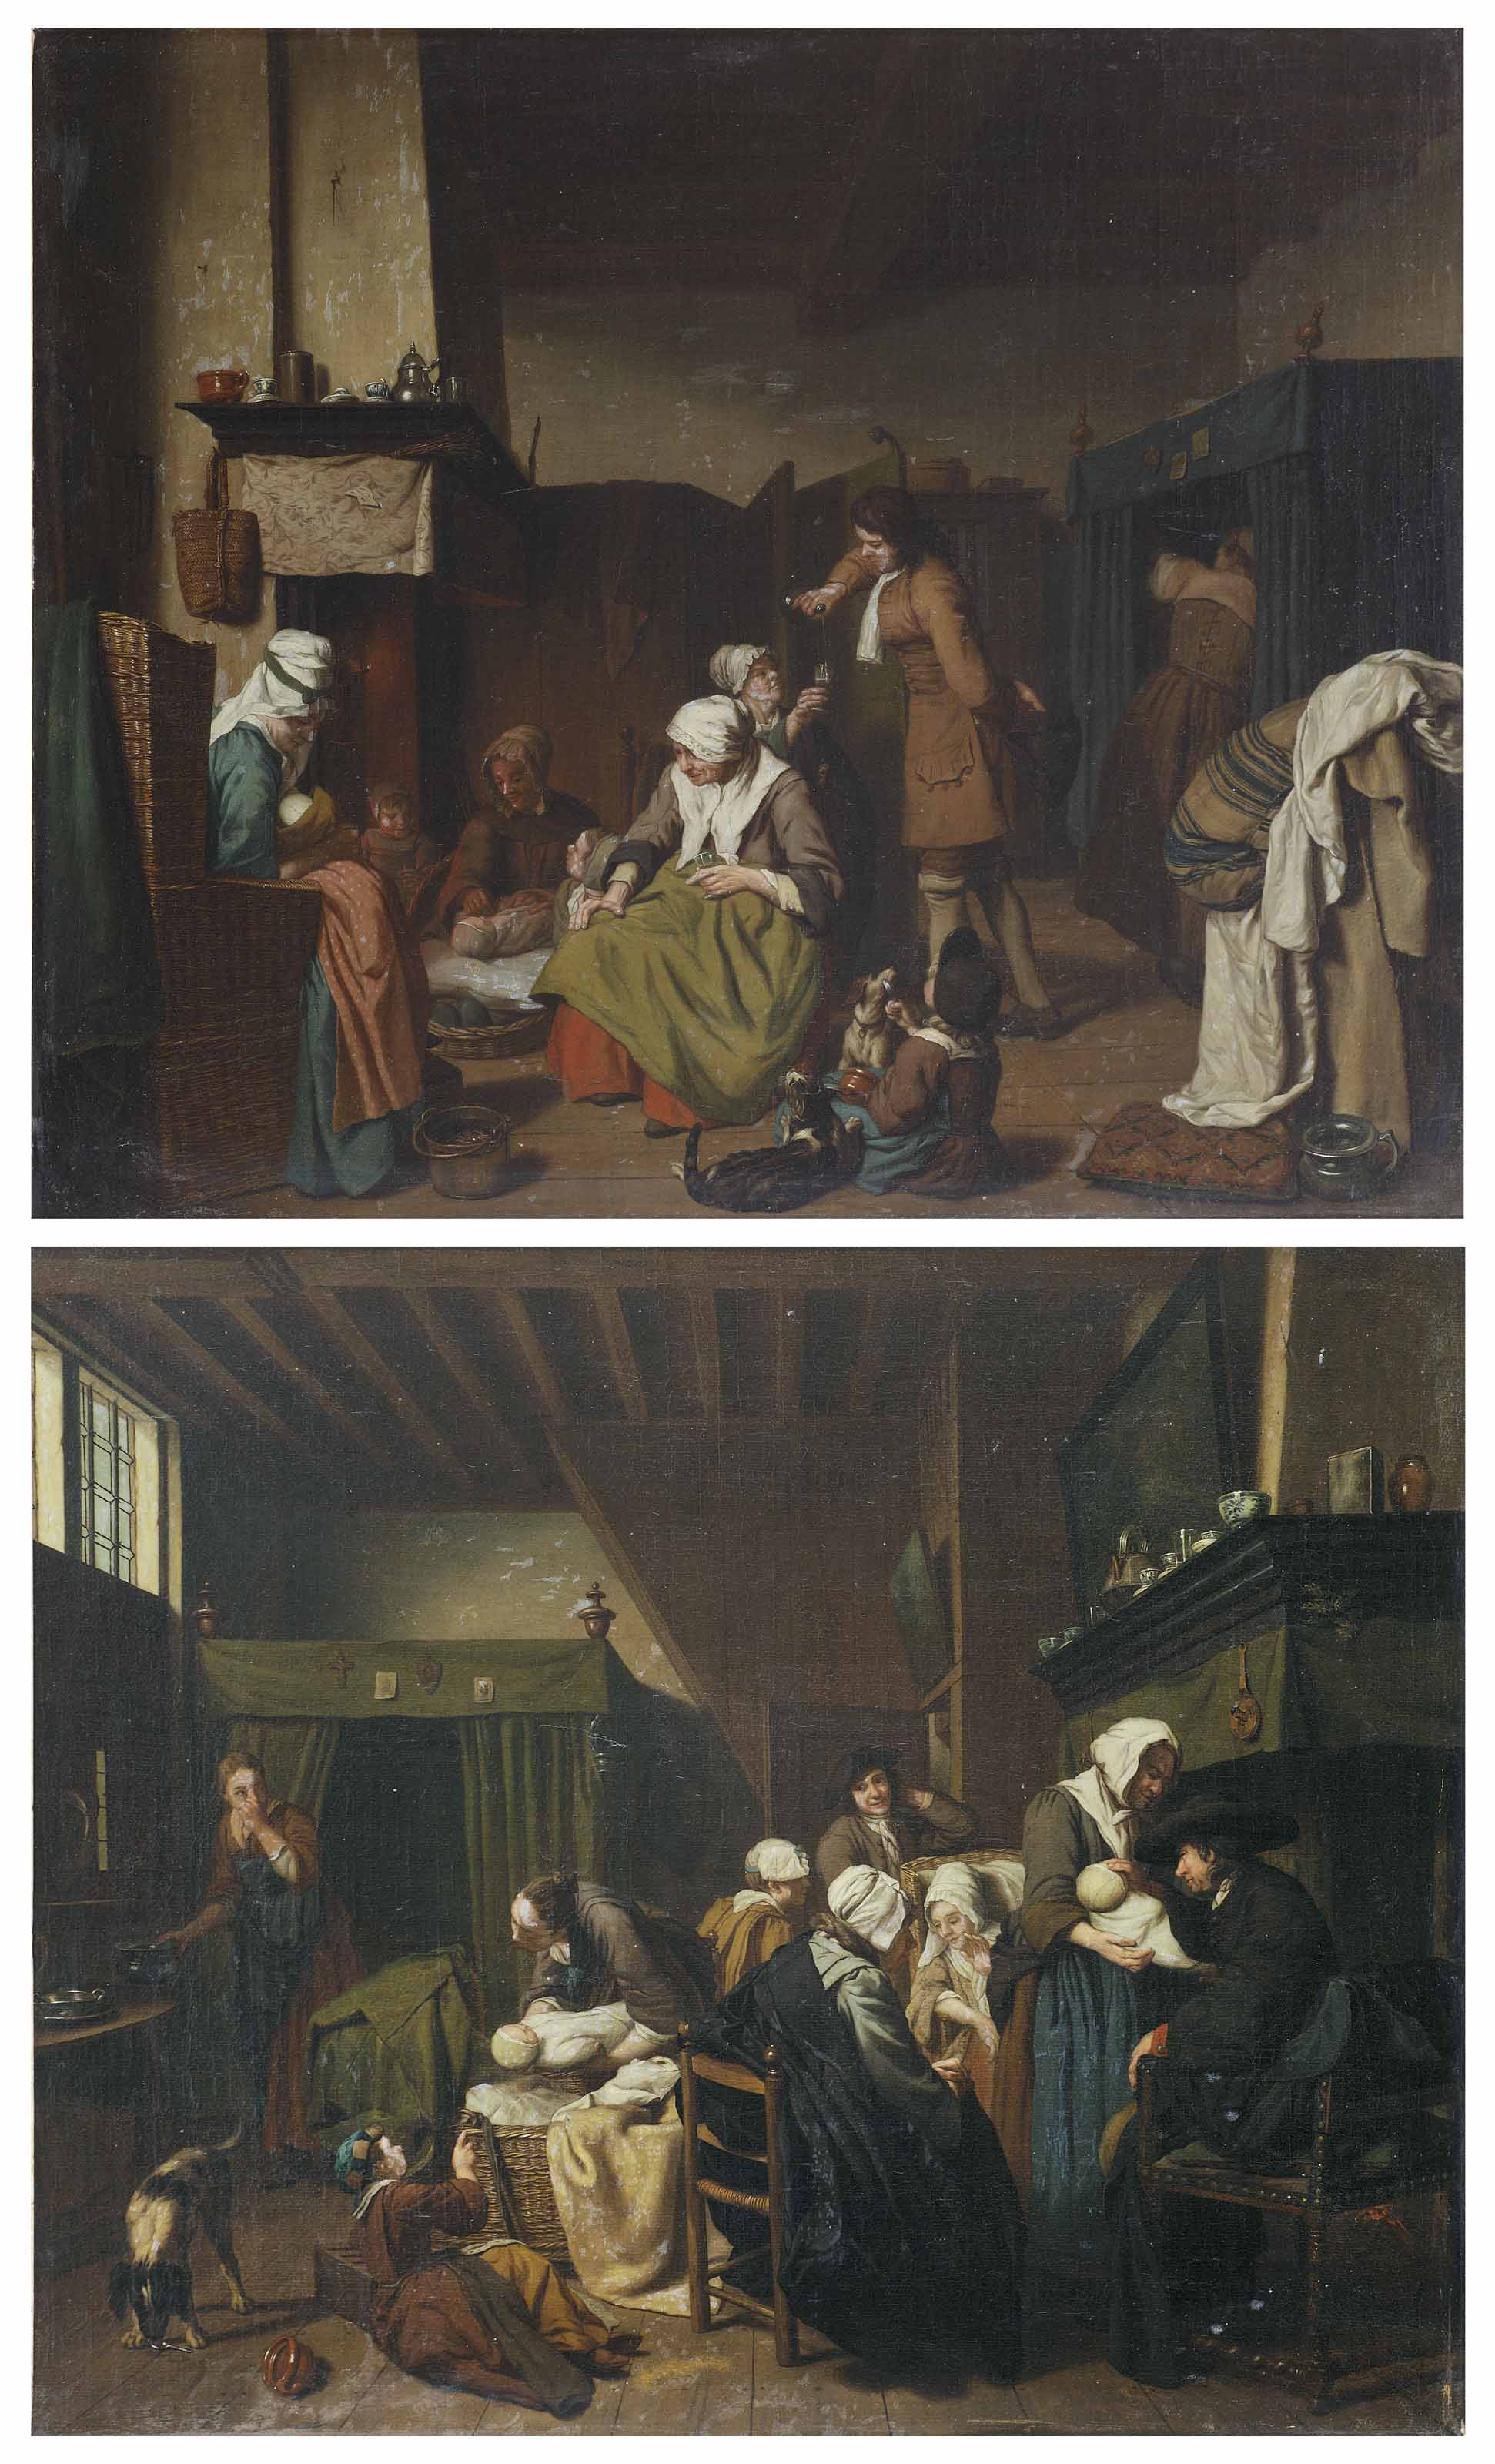 An interior with midwives nursing twins and figures drinking; and An interior with figures visiting a mother and her two newborns